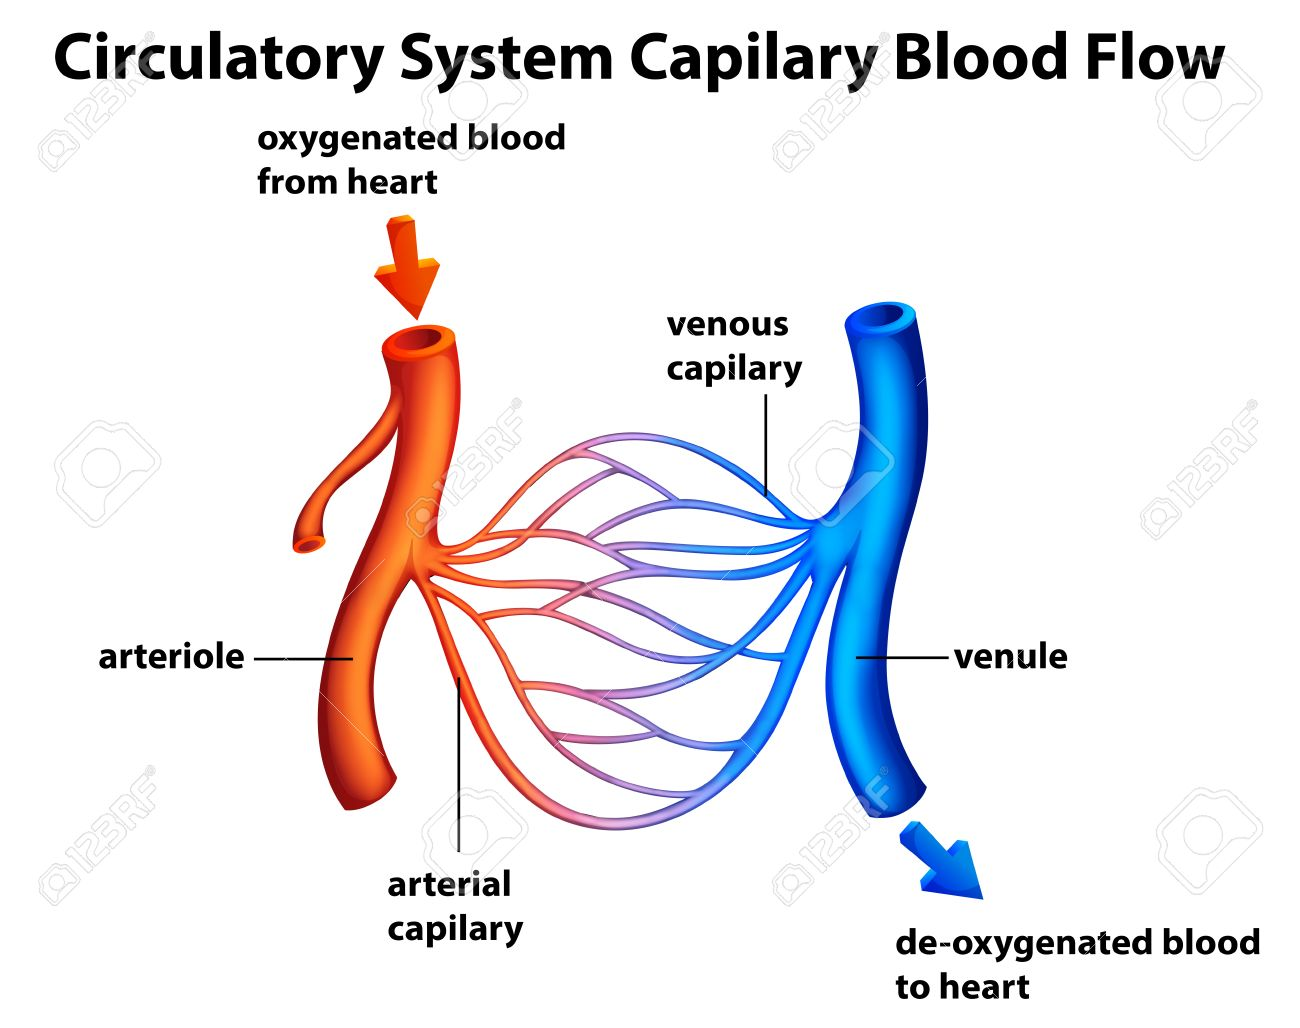 Illustration Of The Circulatory System Capilary Blood Flow